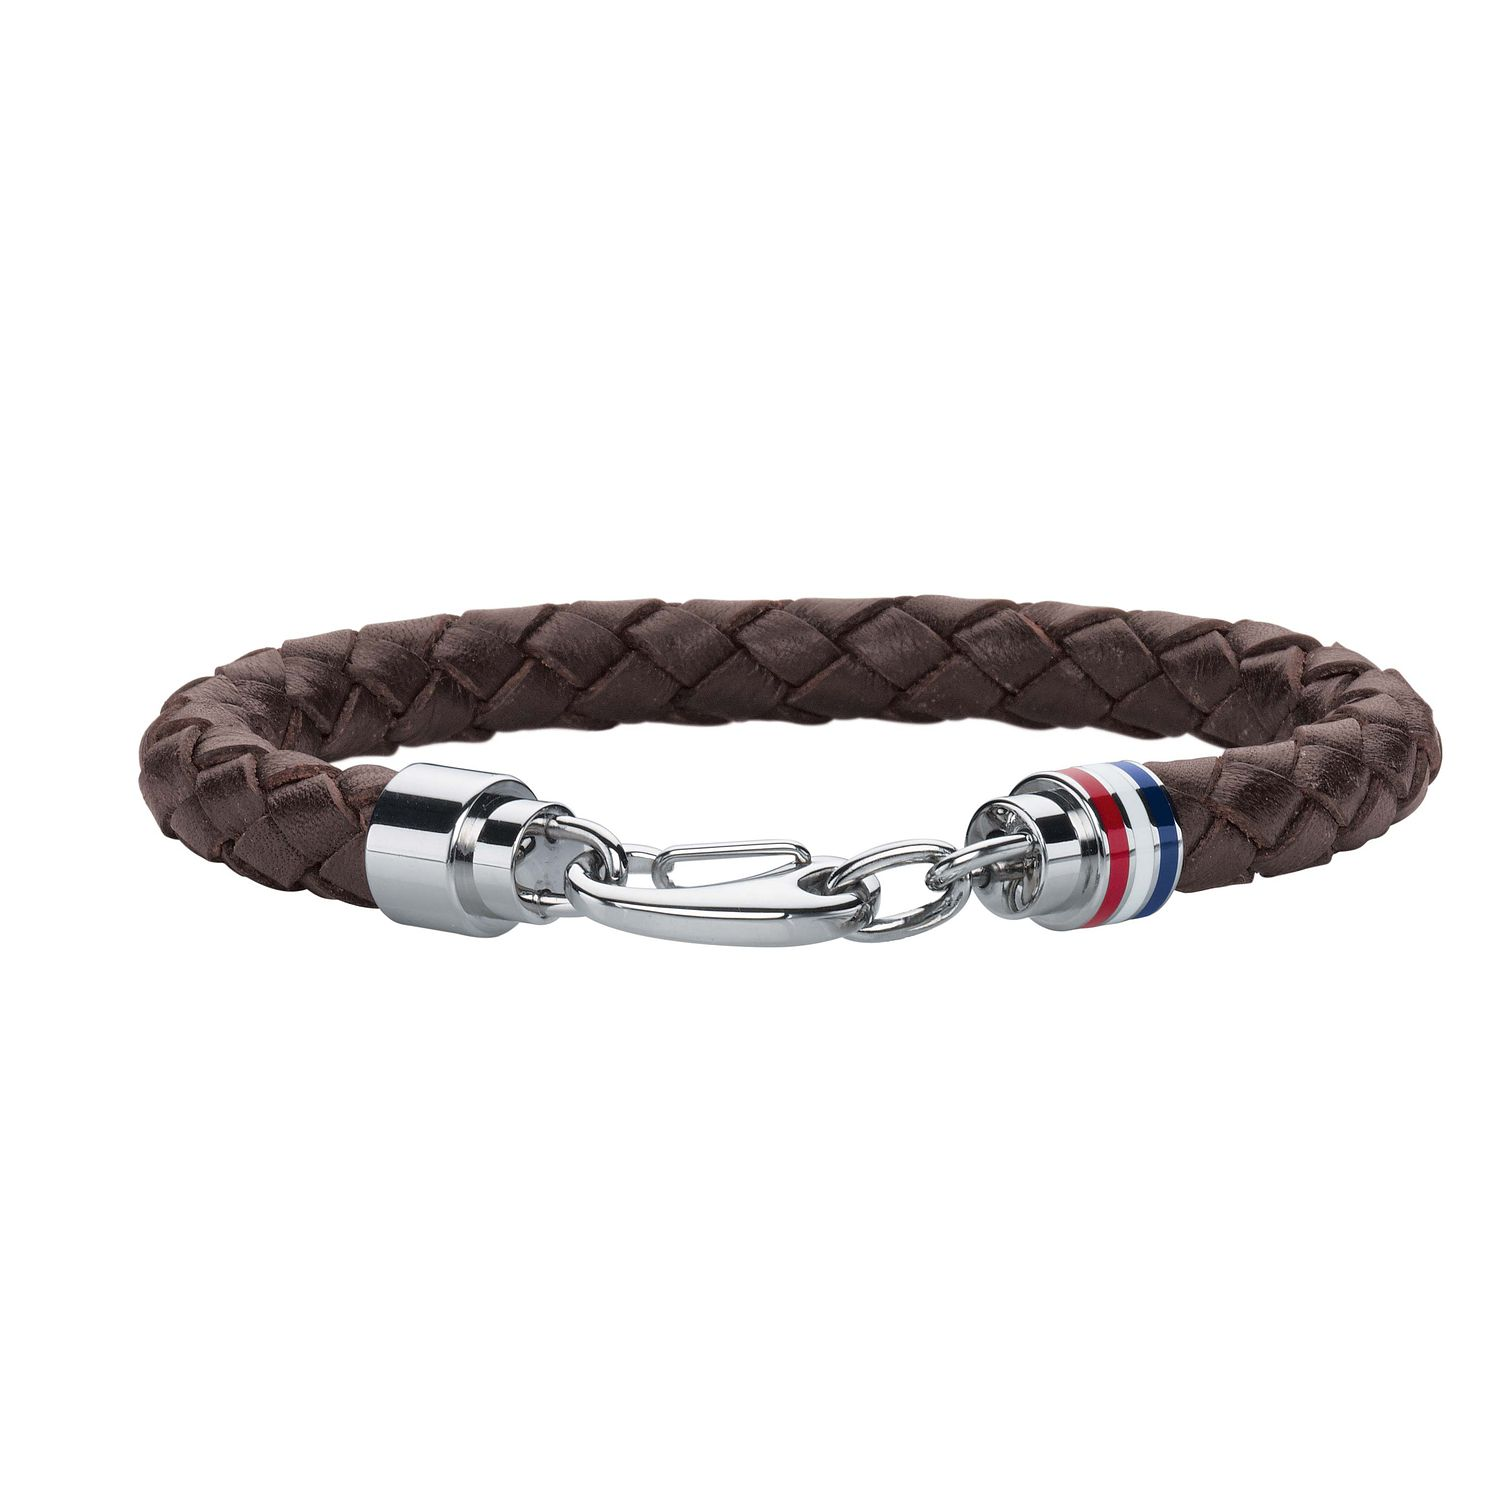 Tommy Hilfiger Men's Brown Leather Cord Bracelet - Product number 2331330